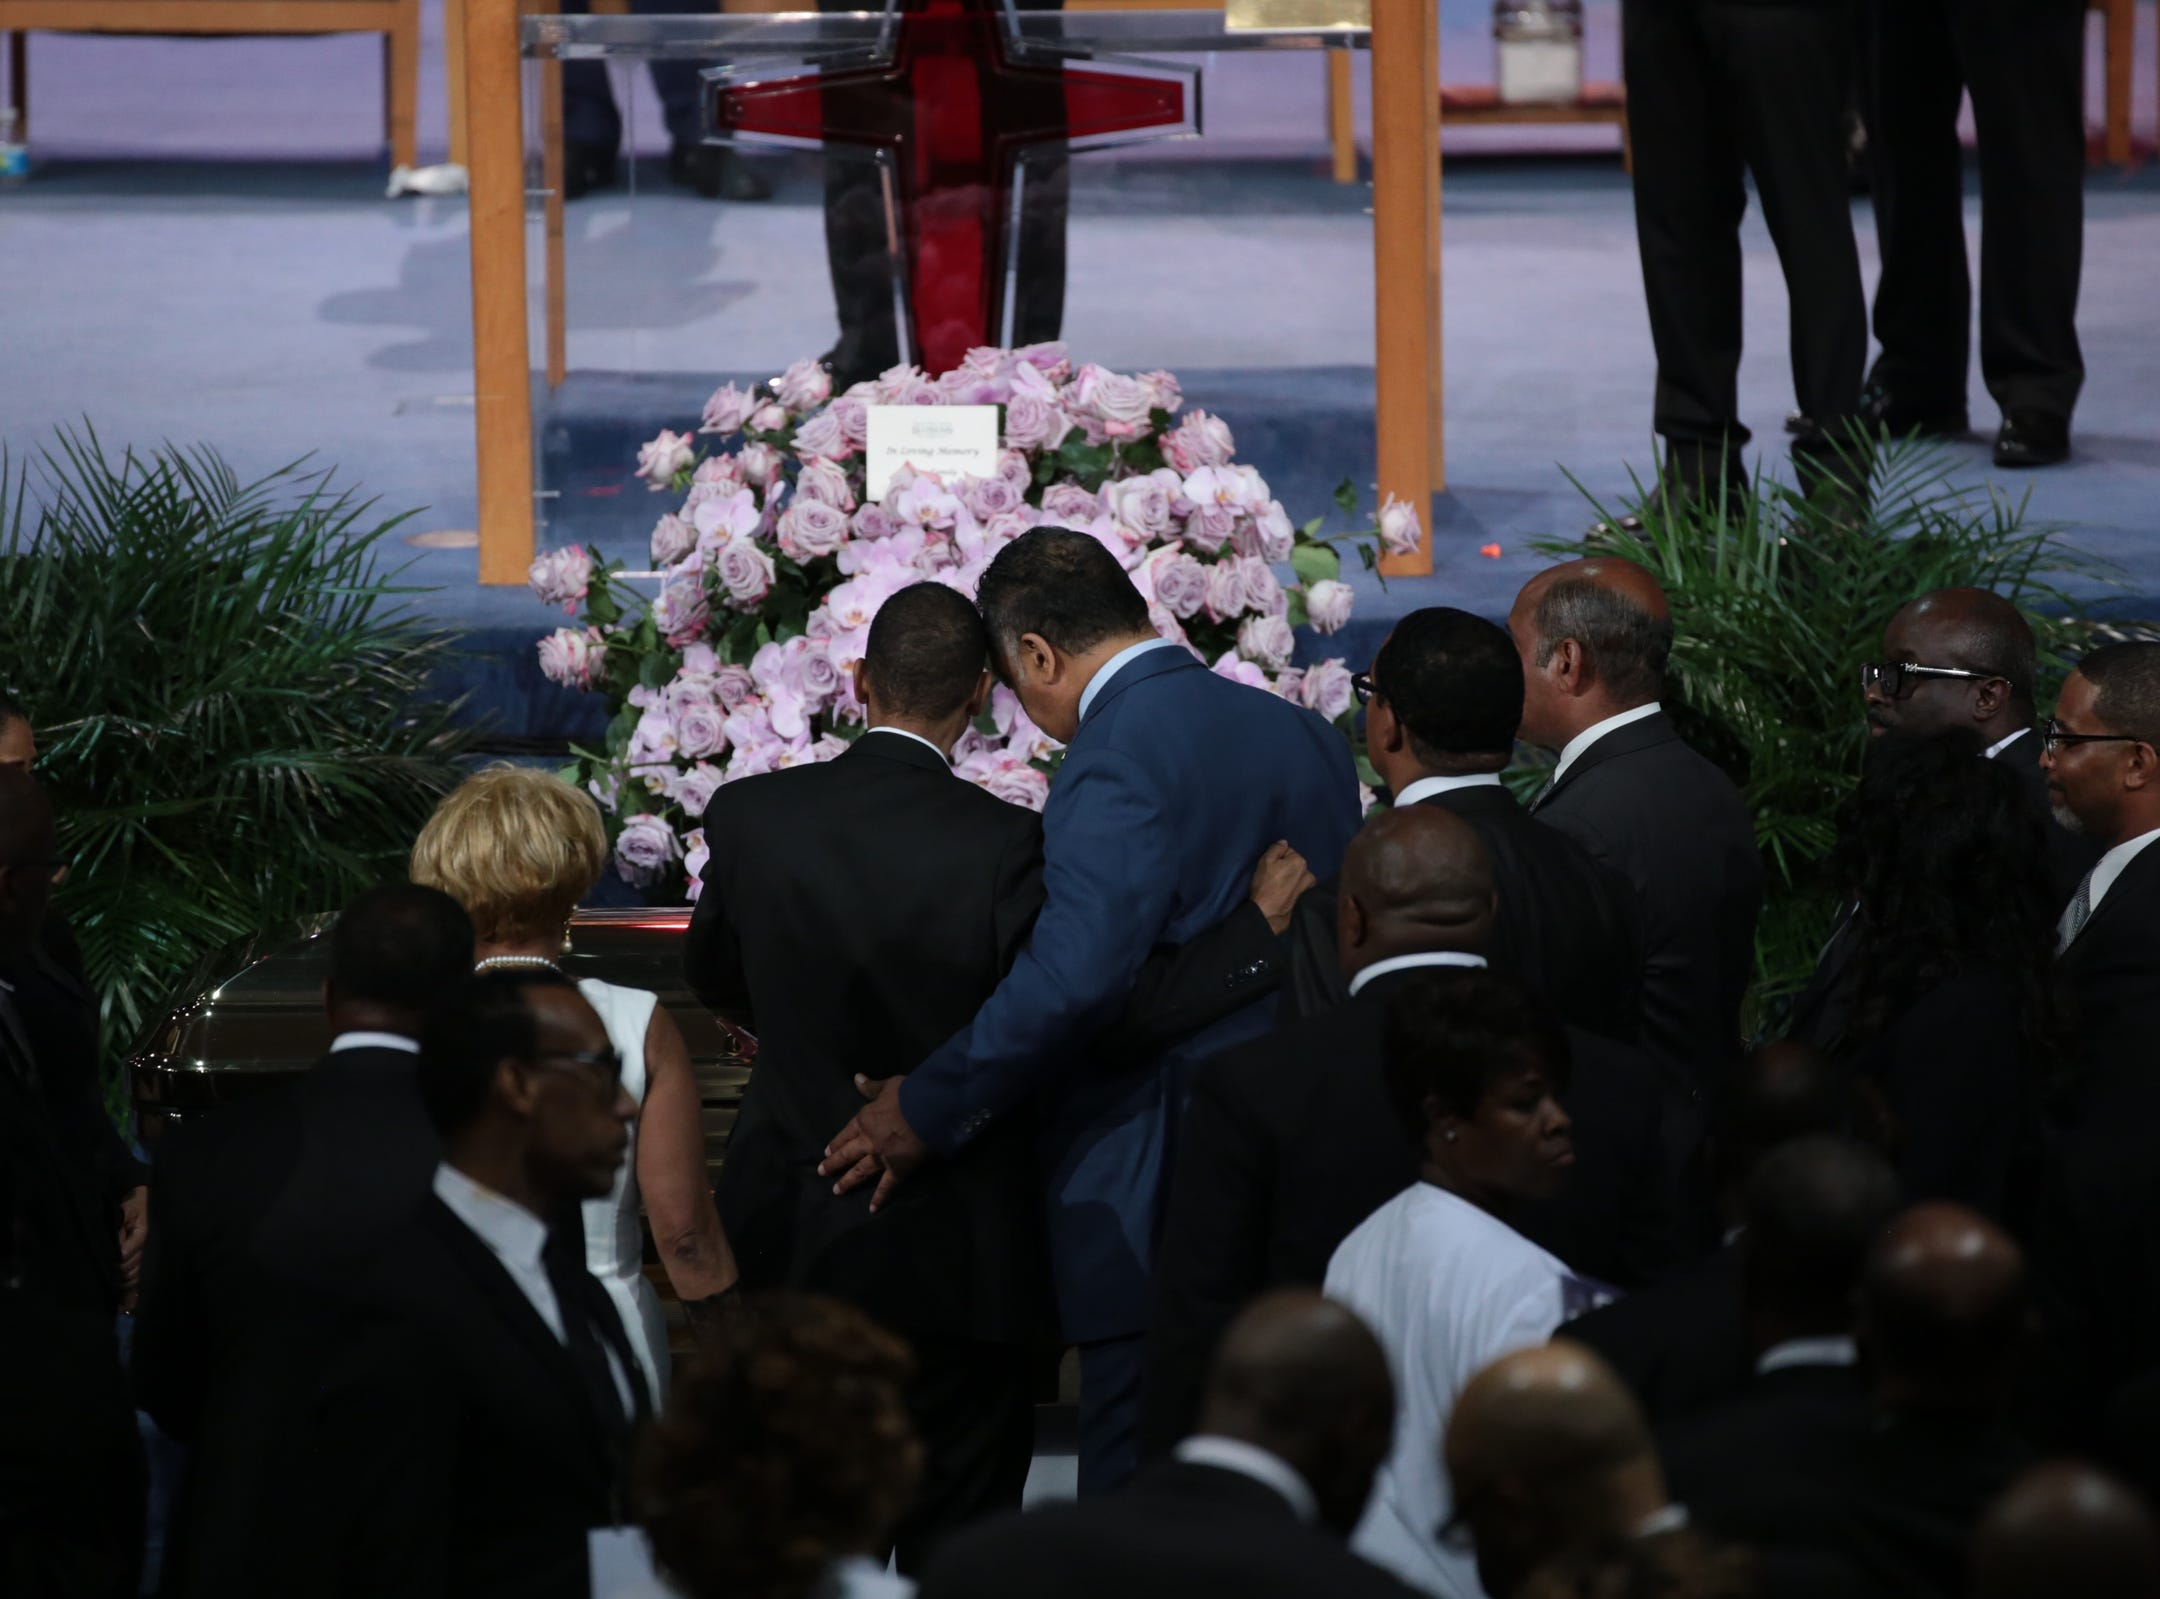 Rev. Jessie Jackson hugs a family member after the casket for the late Aretha Franklin was closed during the funeral for the late Aretha Franklin at Greater Grace Temple in Detroit on Friday, August 31, 2018.